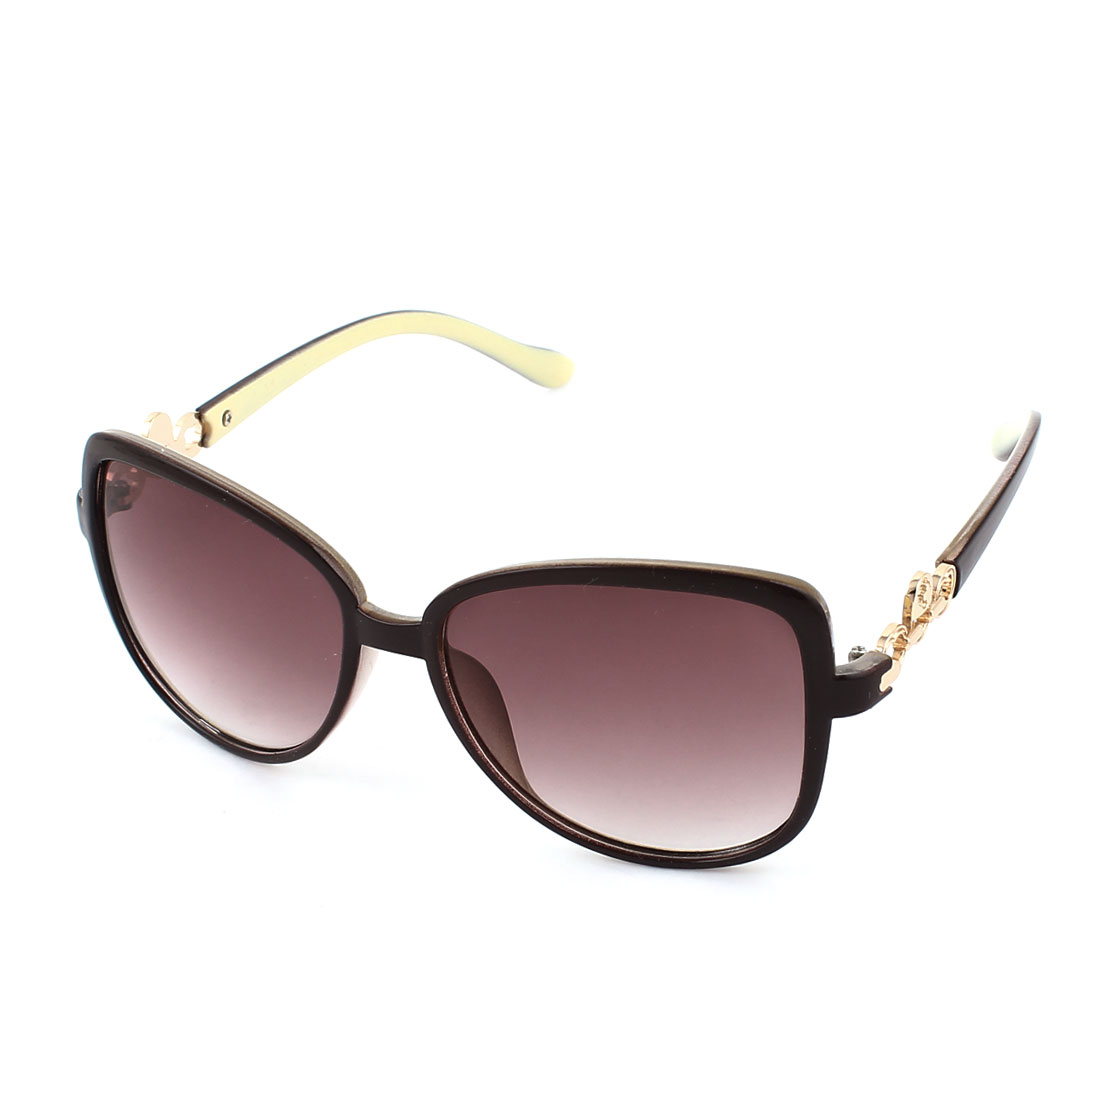 Gold Tone Lock Detail Plastic Full Rim Frame Sun Glasses Sunglasses